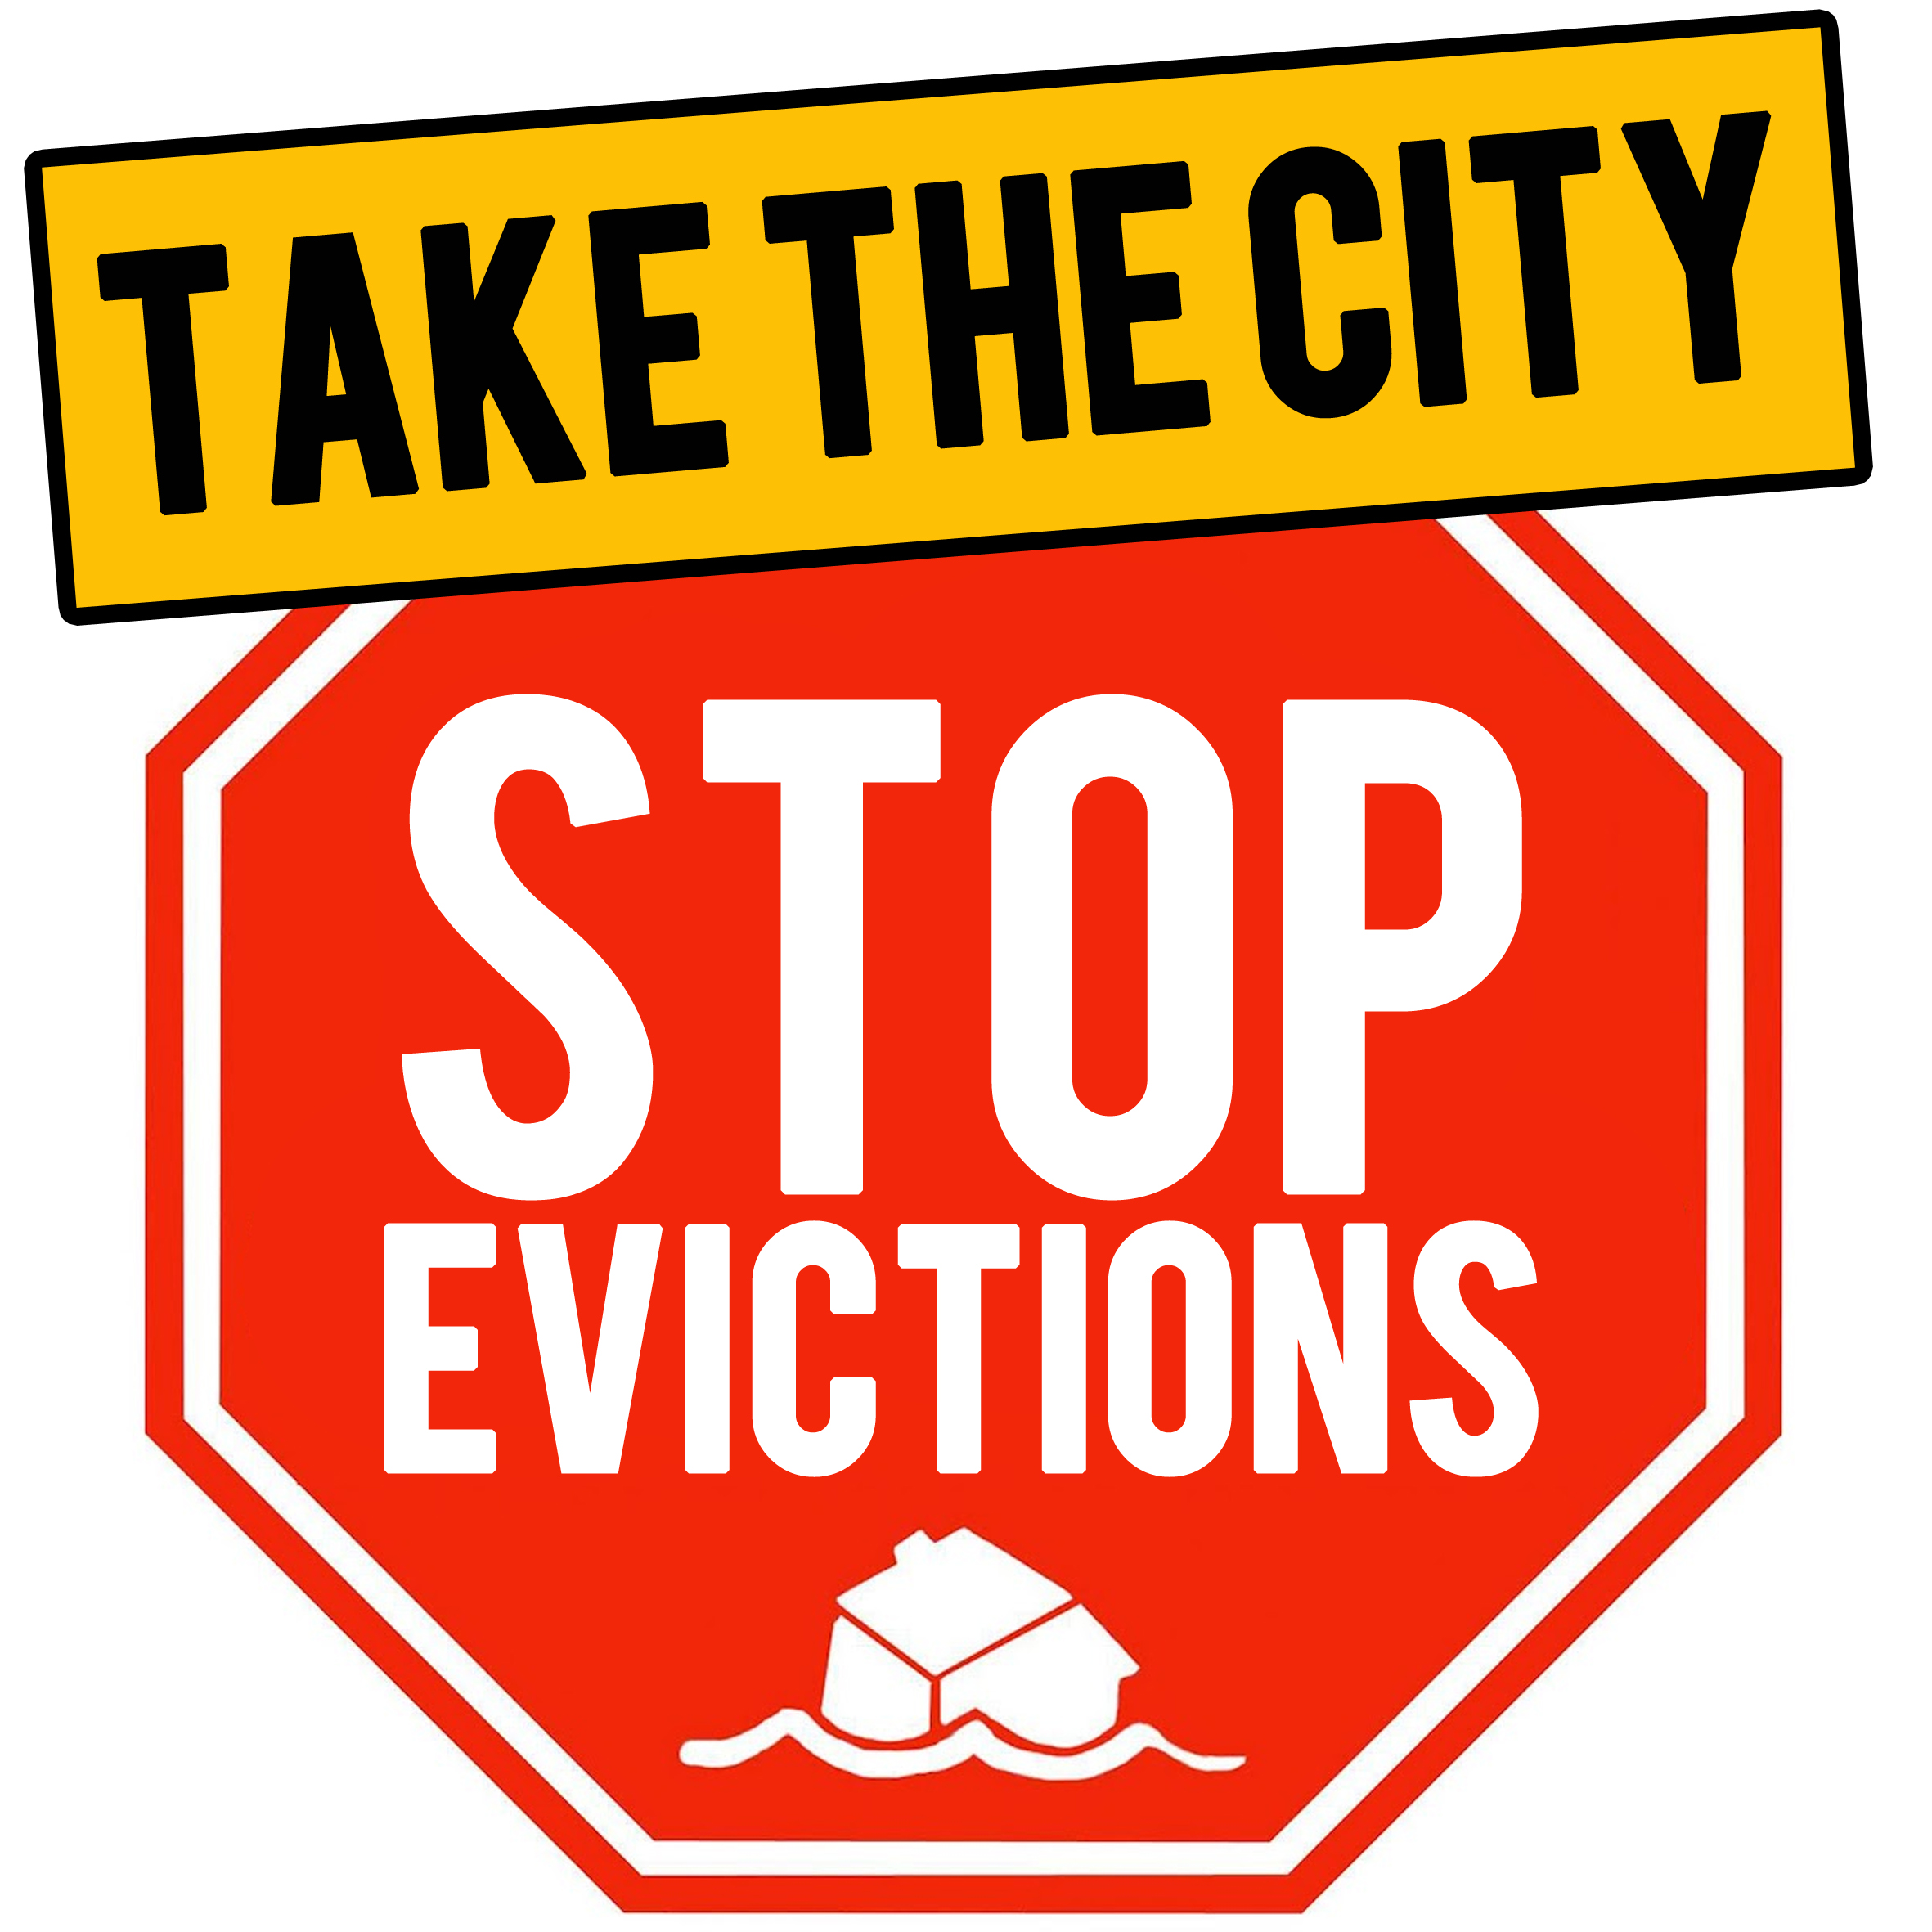 Stop Evictions International, Take the City